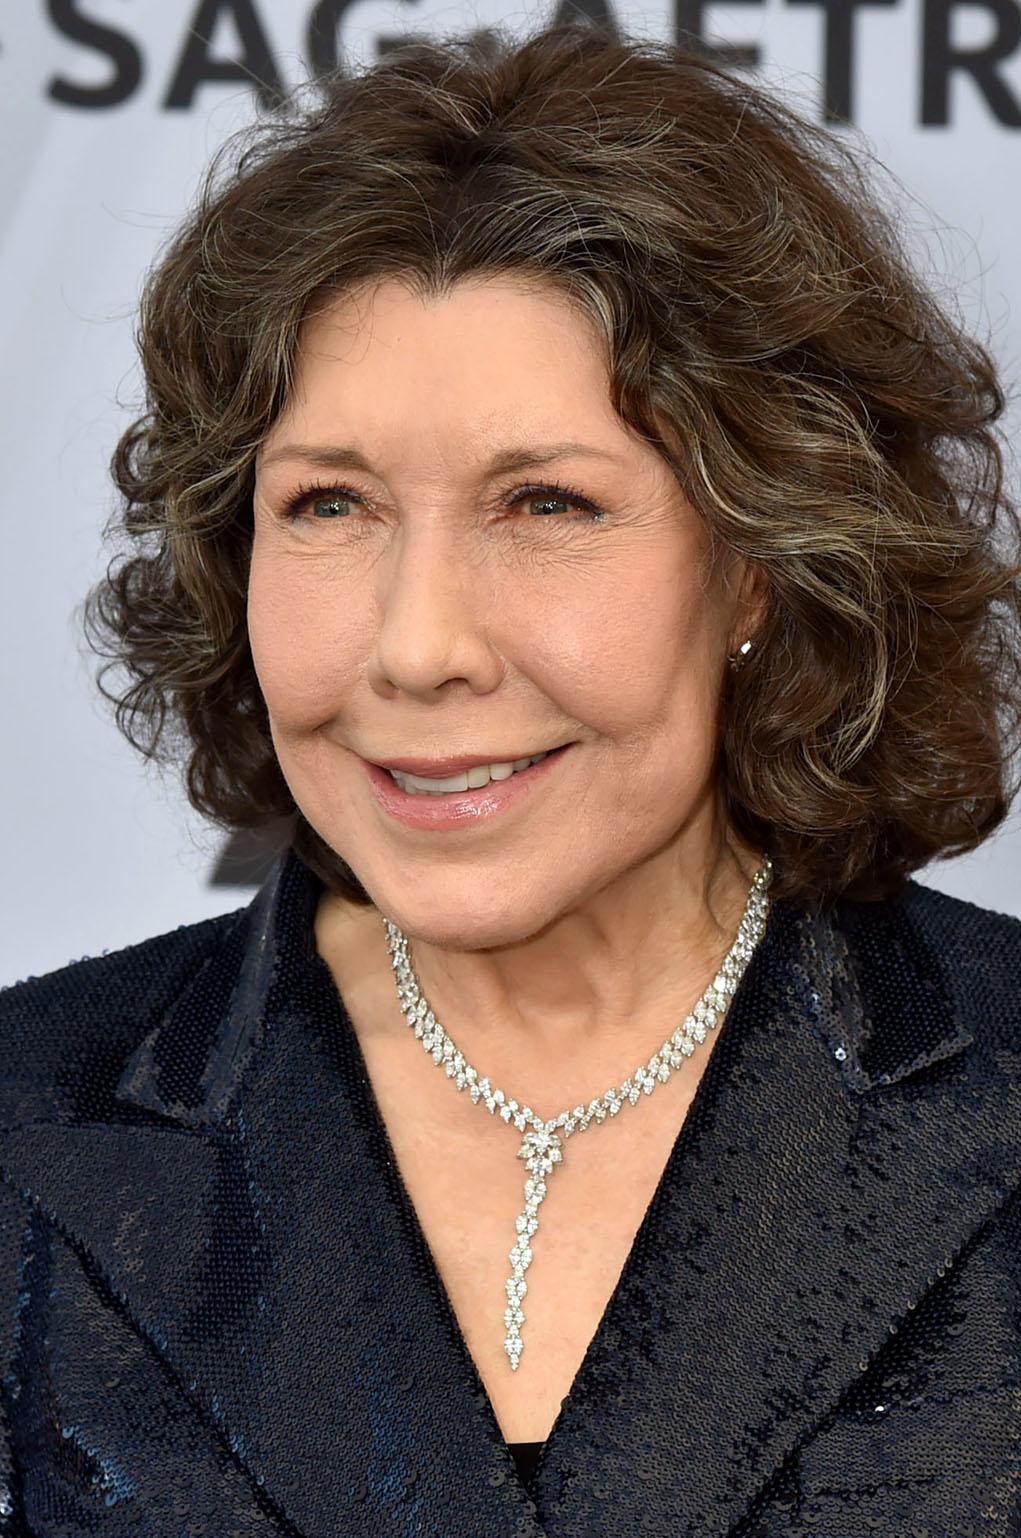 Lily Tomlin at the 25th Annual Screen Actors Guild Awards in Los Angeles.